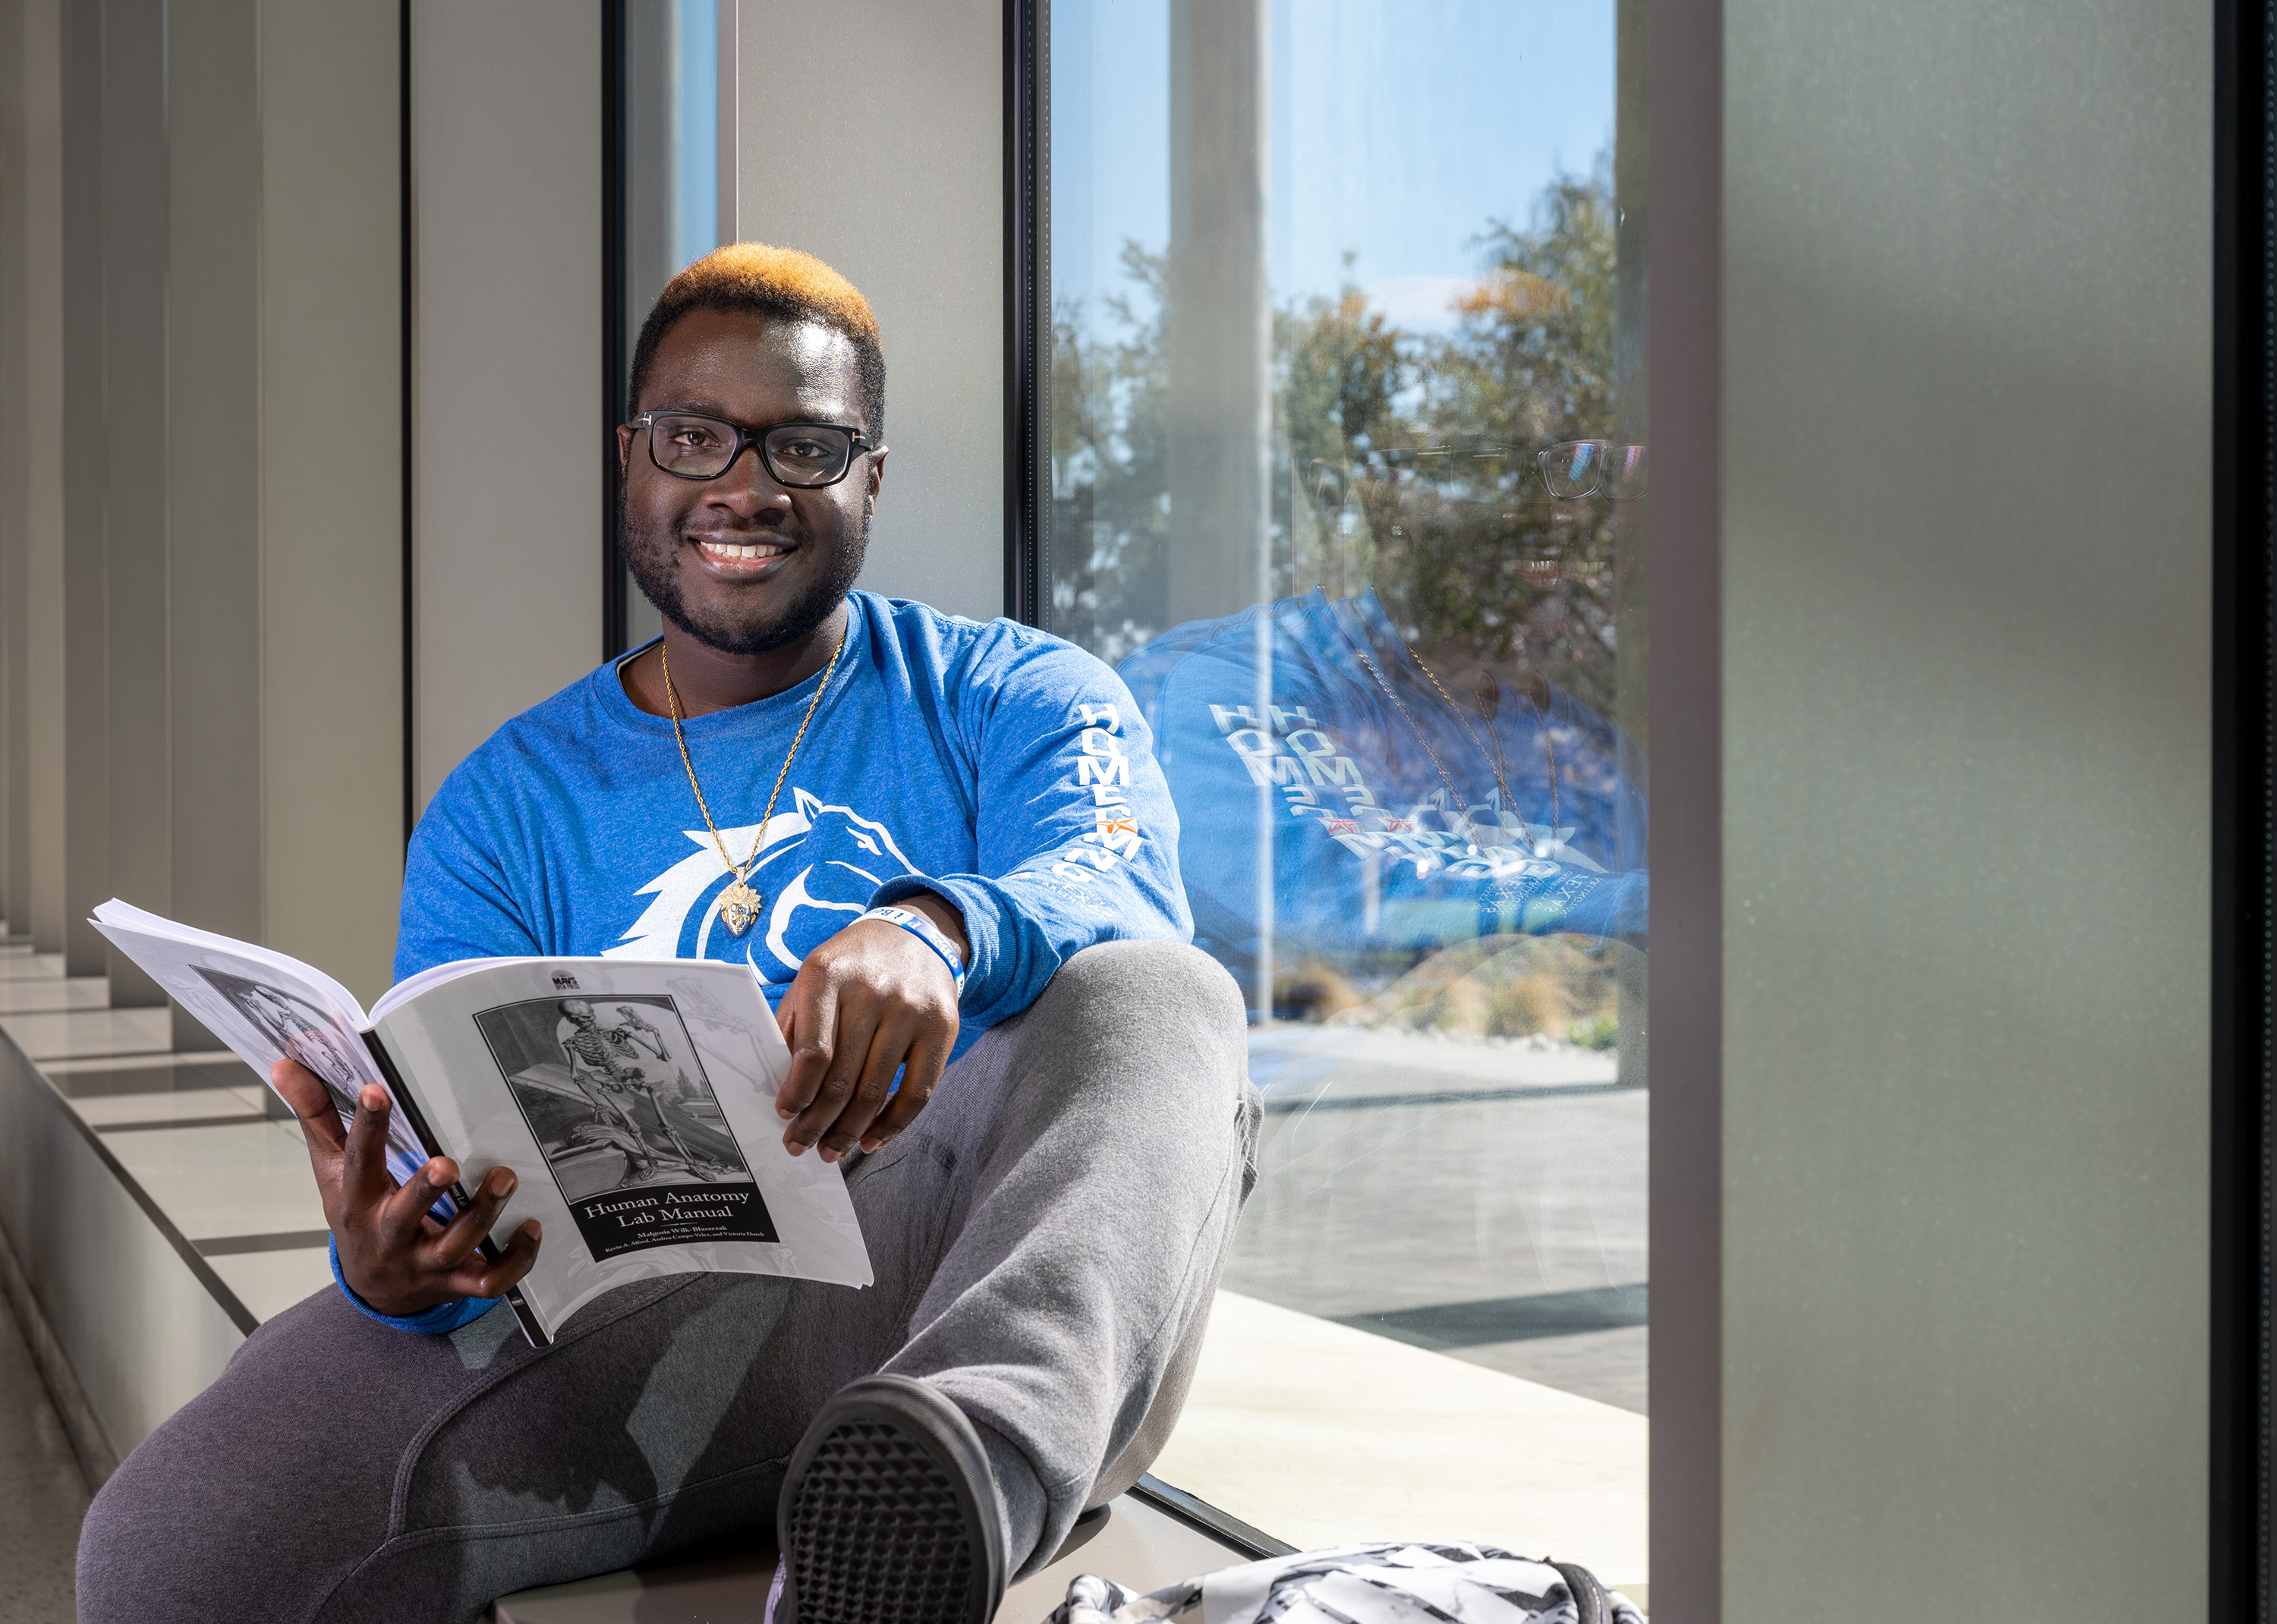 trevvion sheppard sitting in a window reading on campus